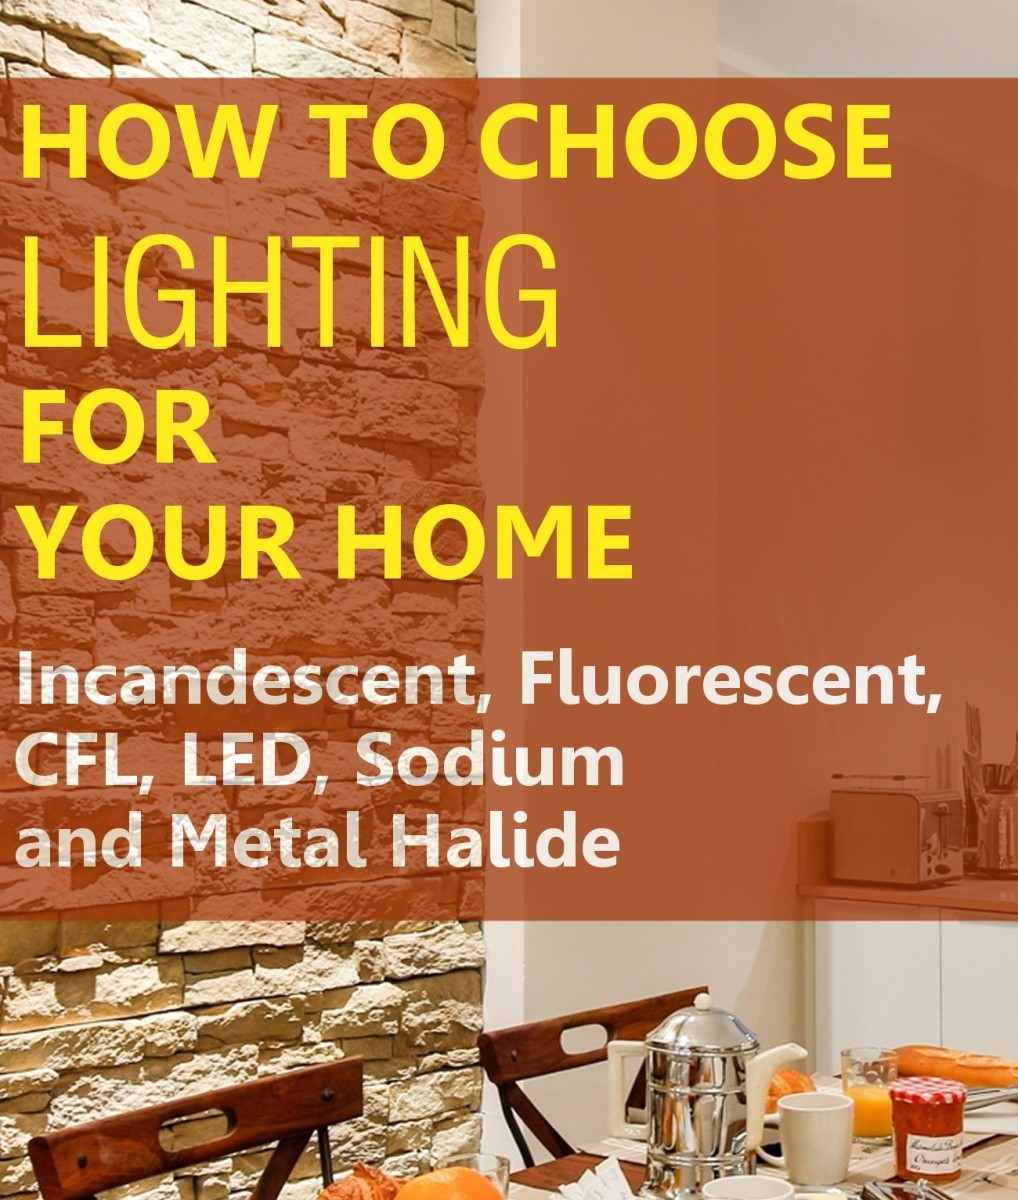 Types of Lighting for Your Home: LED, CFL, Fluorescent, Sodium, Halogen and Incandescent